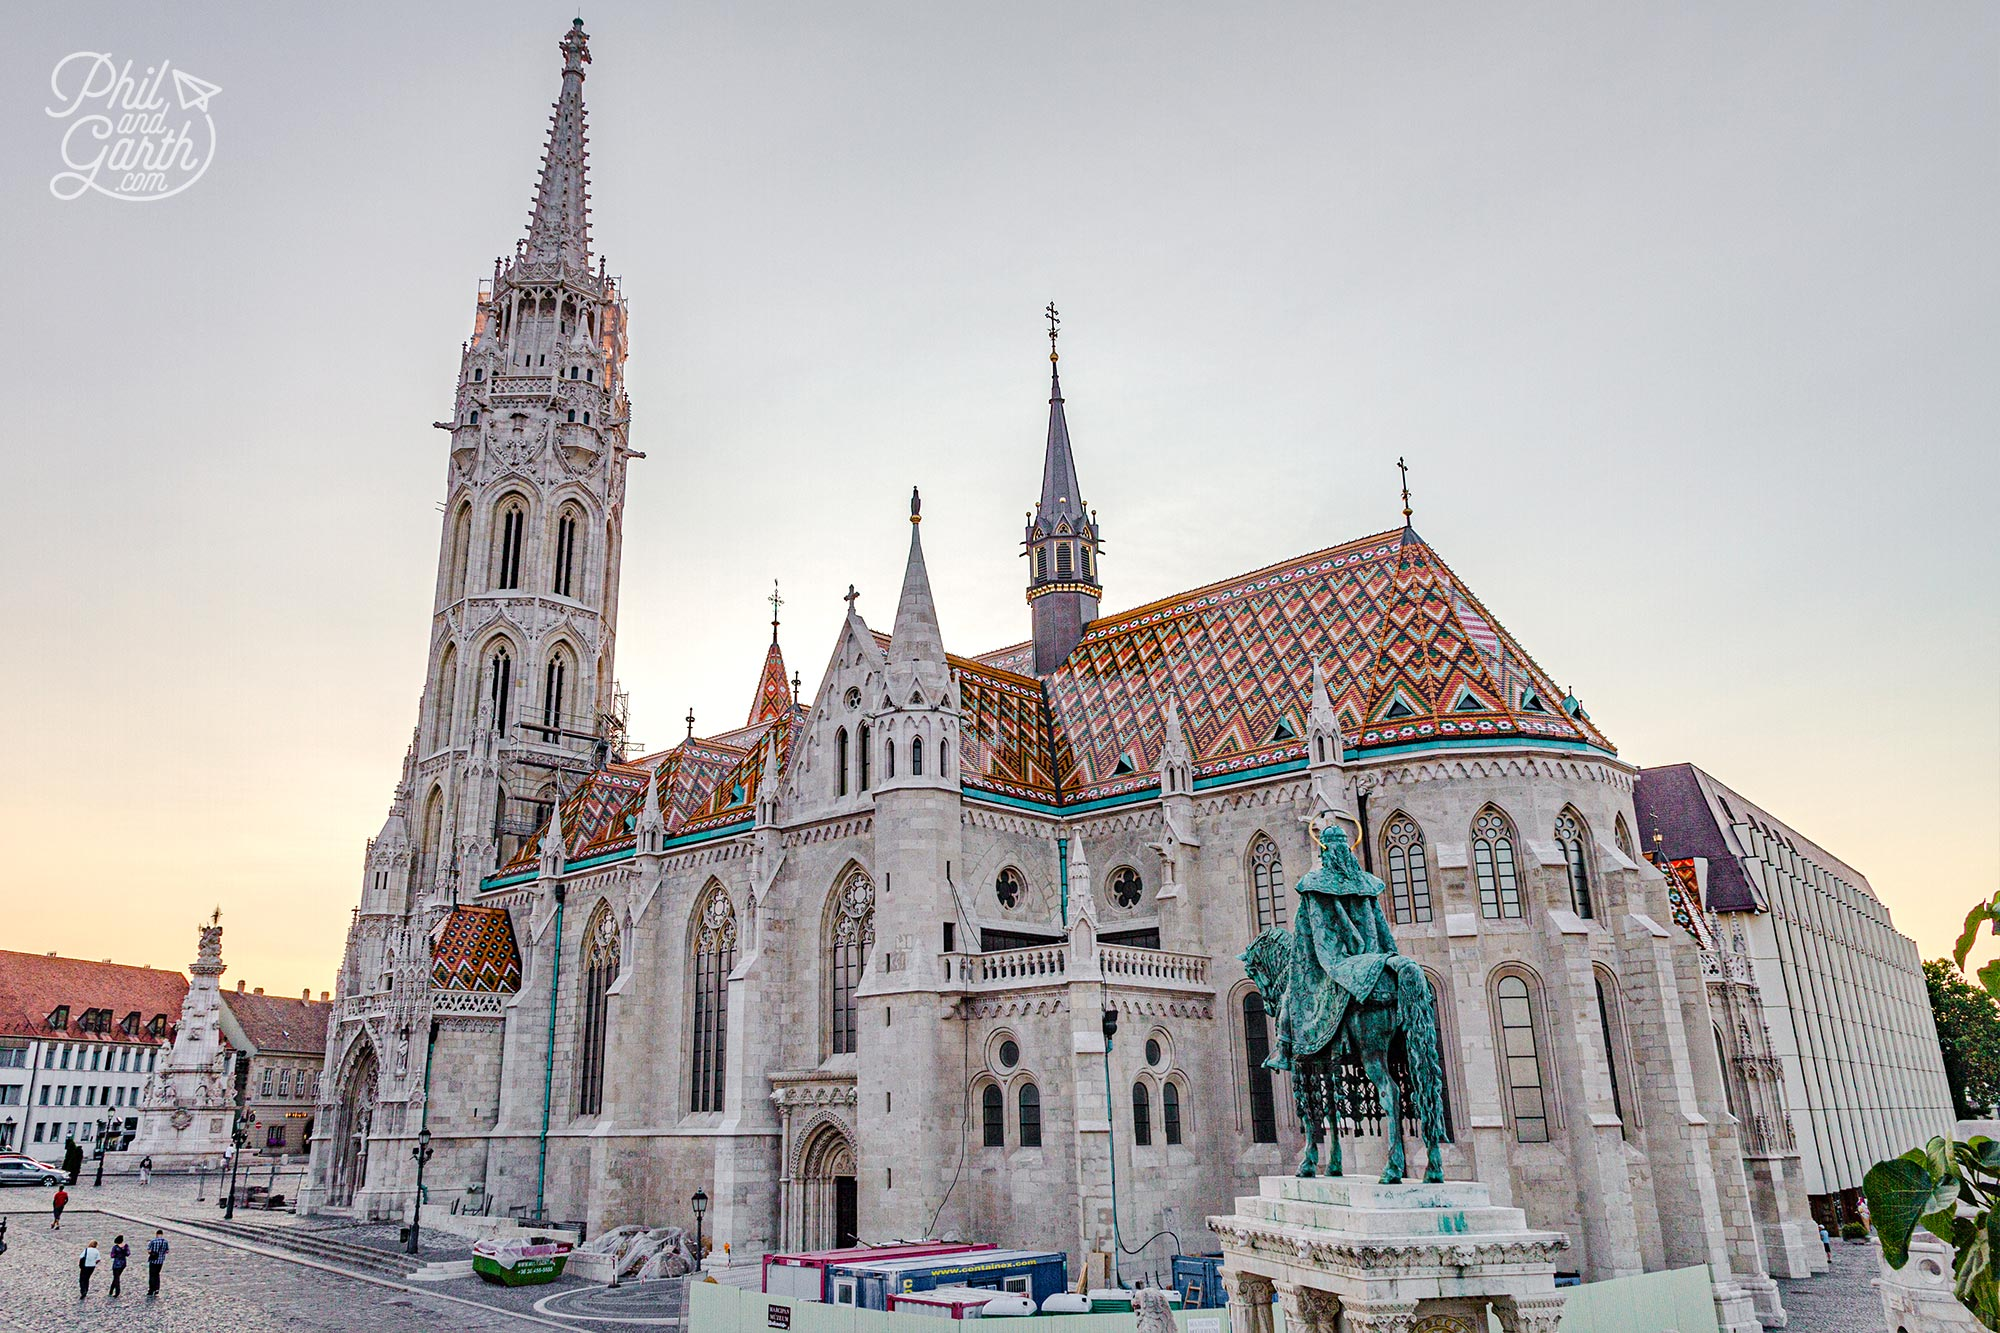 The majestic Matthias Church beautiful inside and out